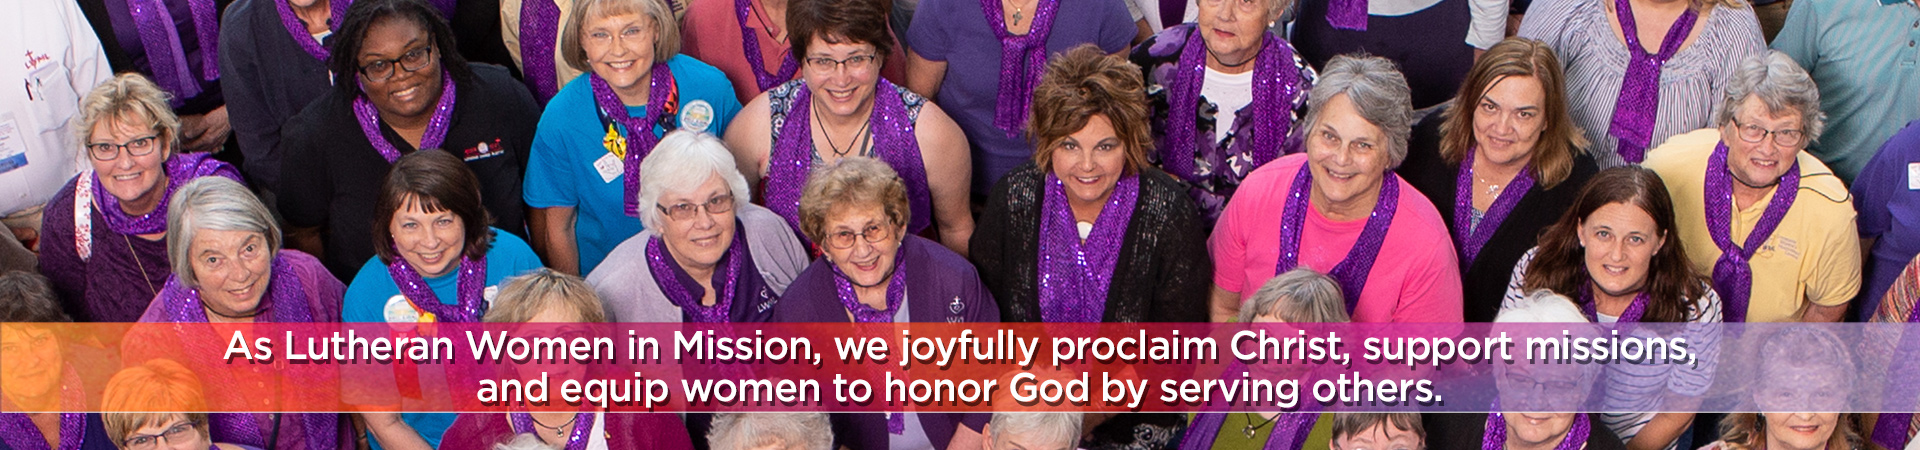 As Lutheran Women in Mission, we joyfully proclaim Christ, support missions, and equip women to honor God by serving others.